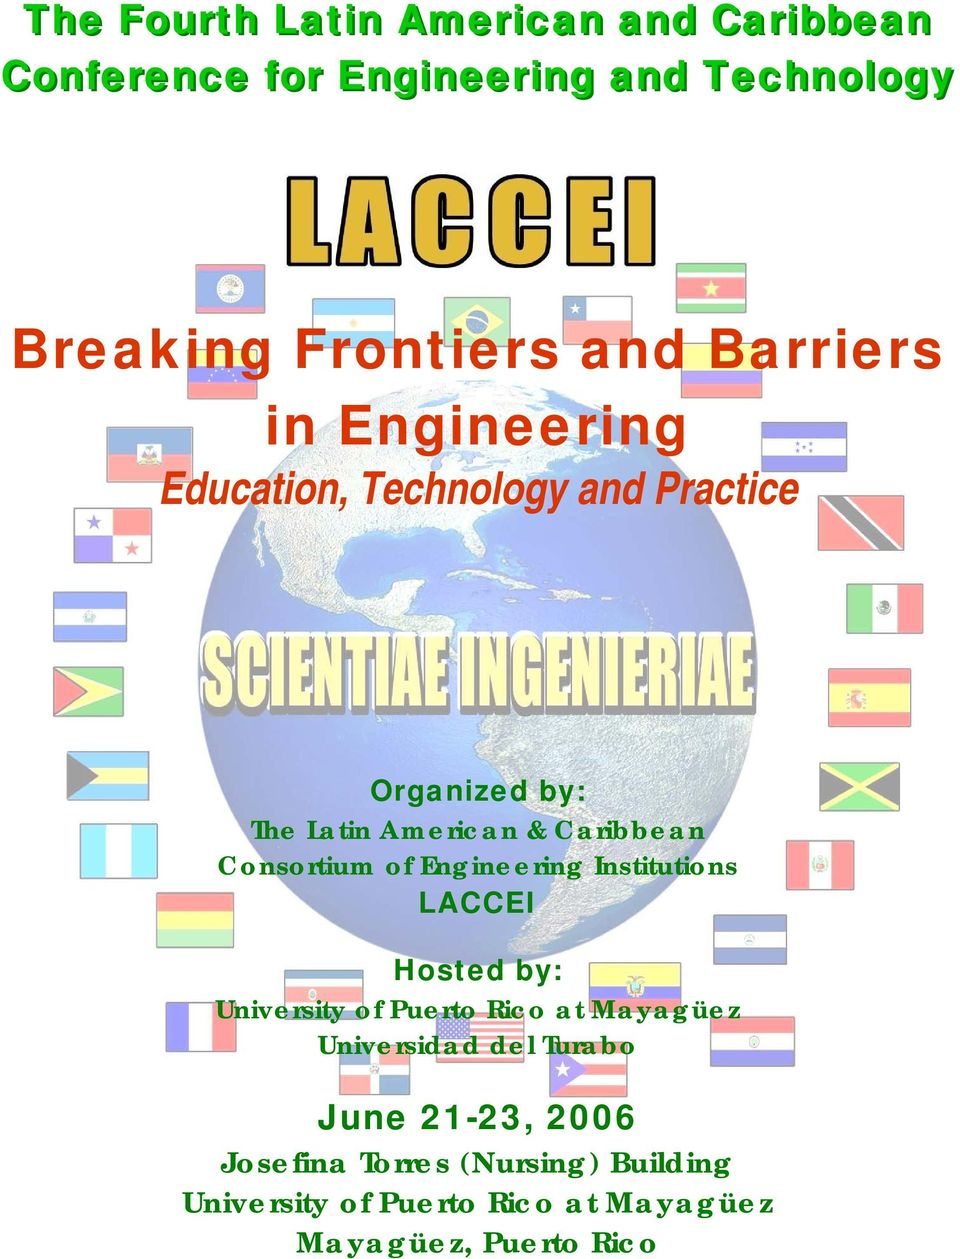 Consortium of Engineering Institutions LACCEI Hosted by: University of Puerto Rico at Mayagüez Universidad